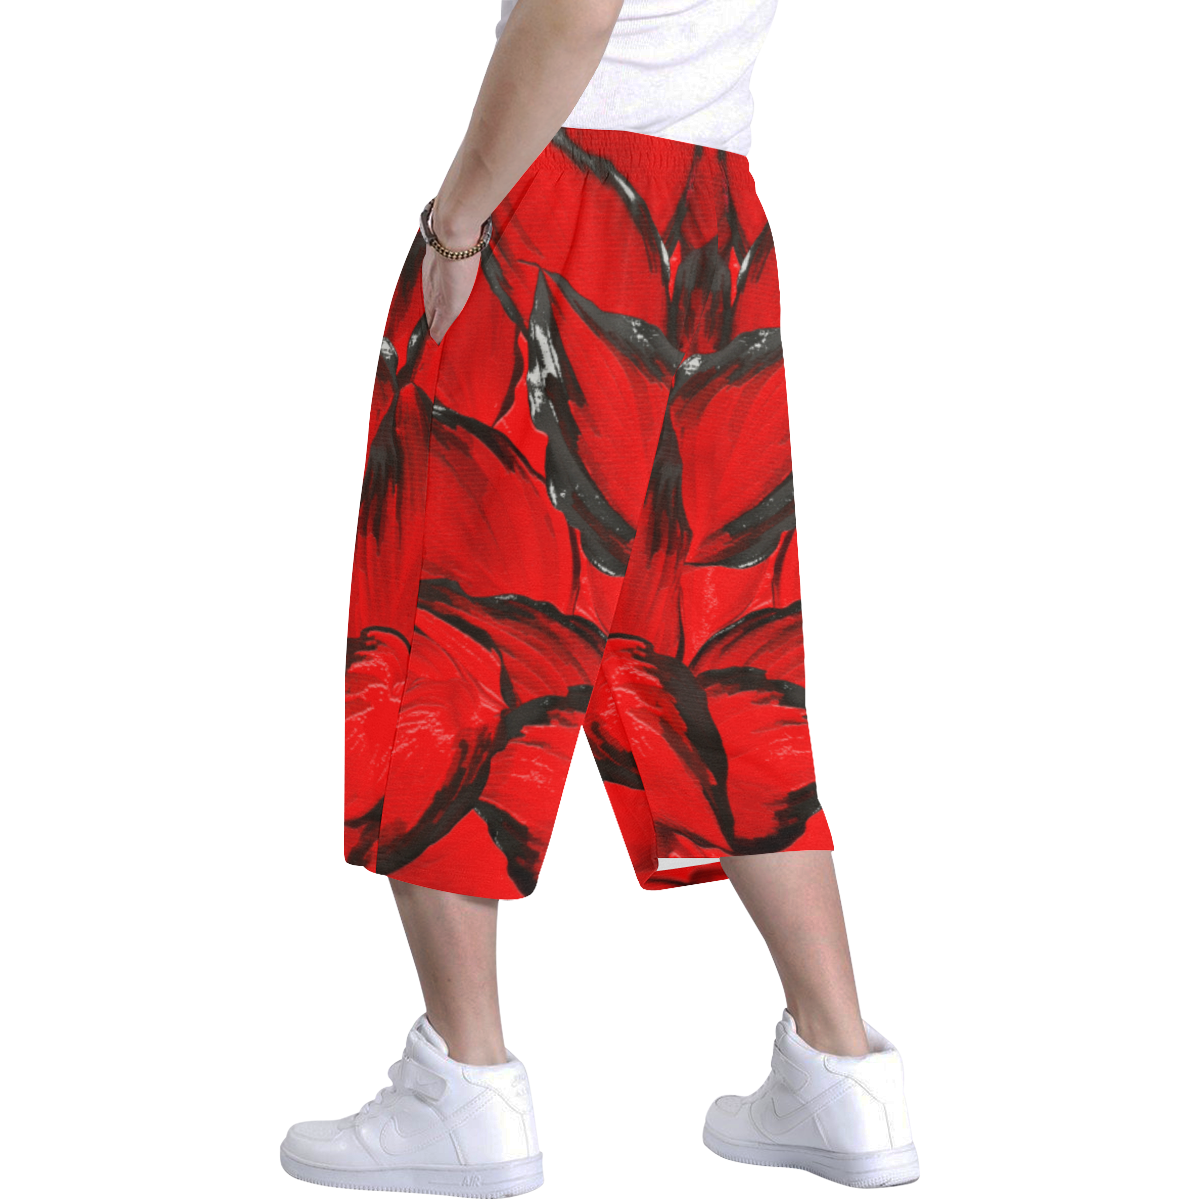 leafs_abstract TRY2 06 Men's All Over Print Baggy Shorts (Model L37)